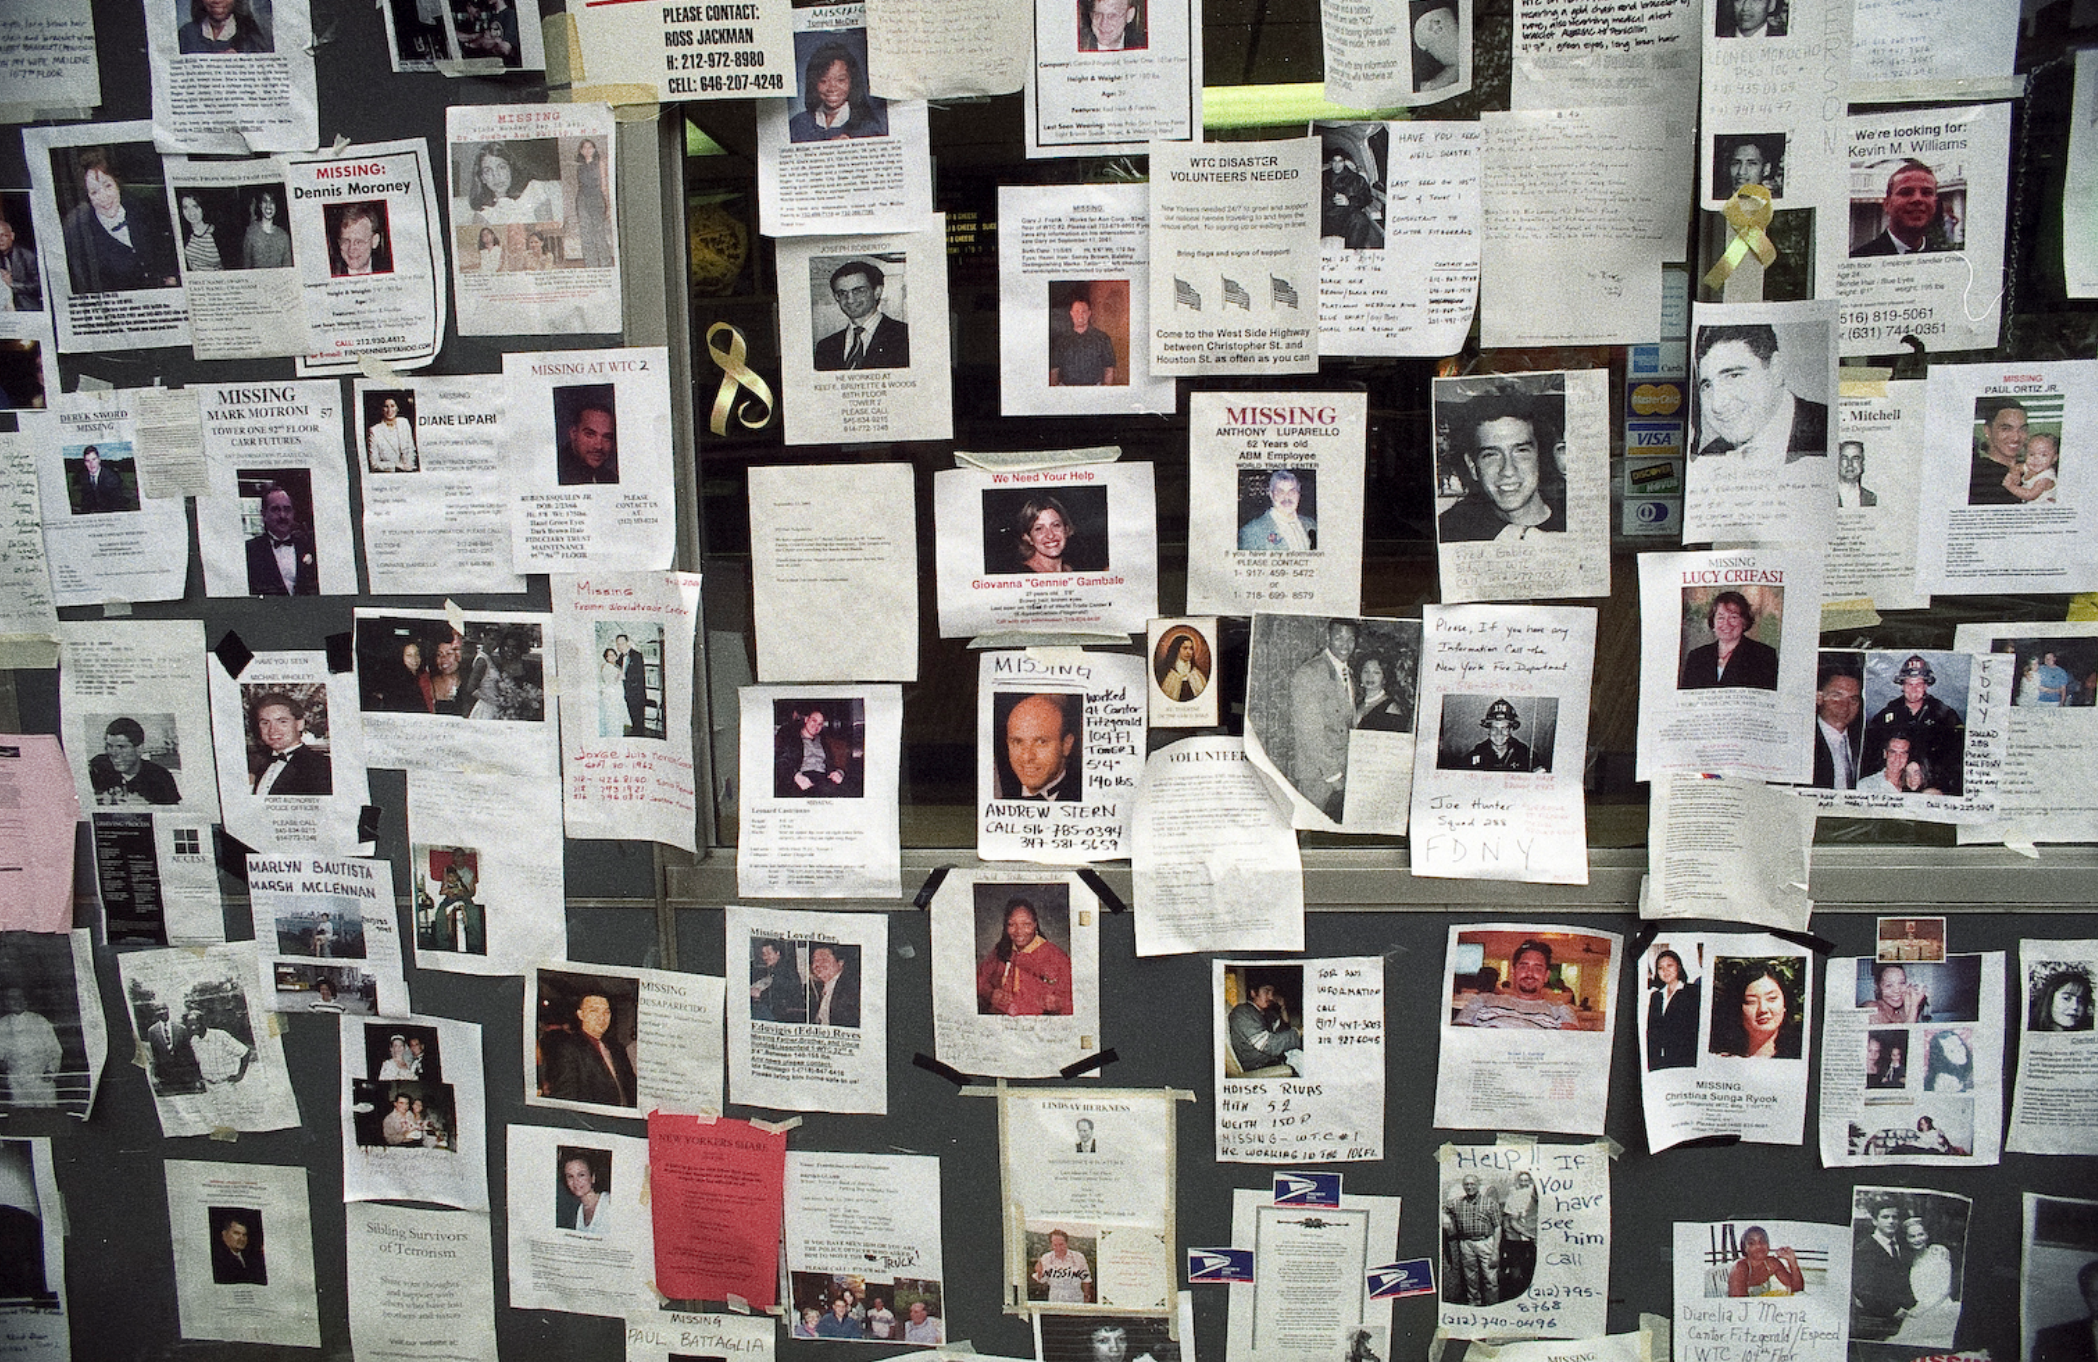 A screenshot of a wall covered with posters of missing people